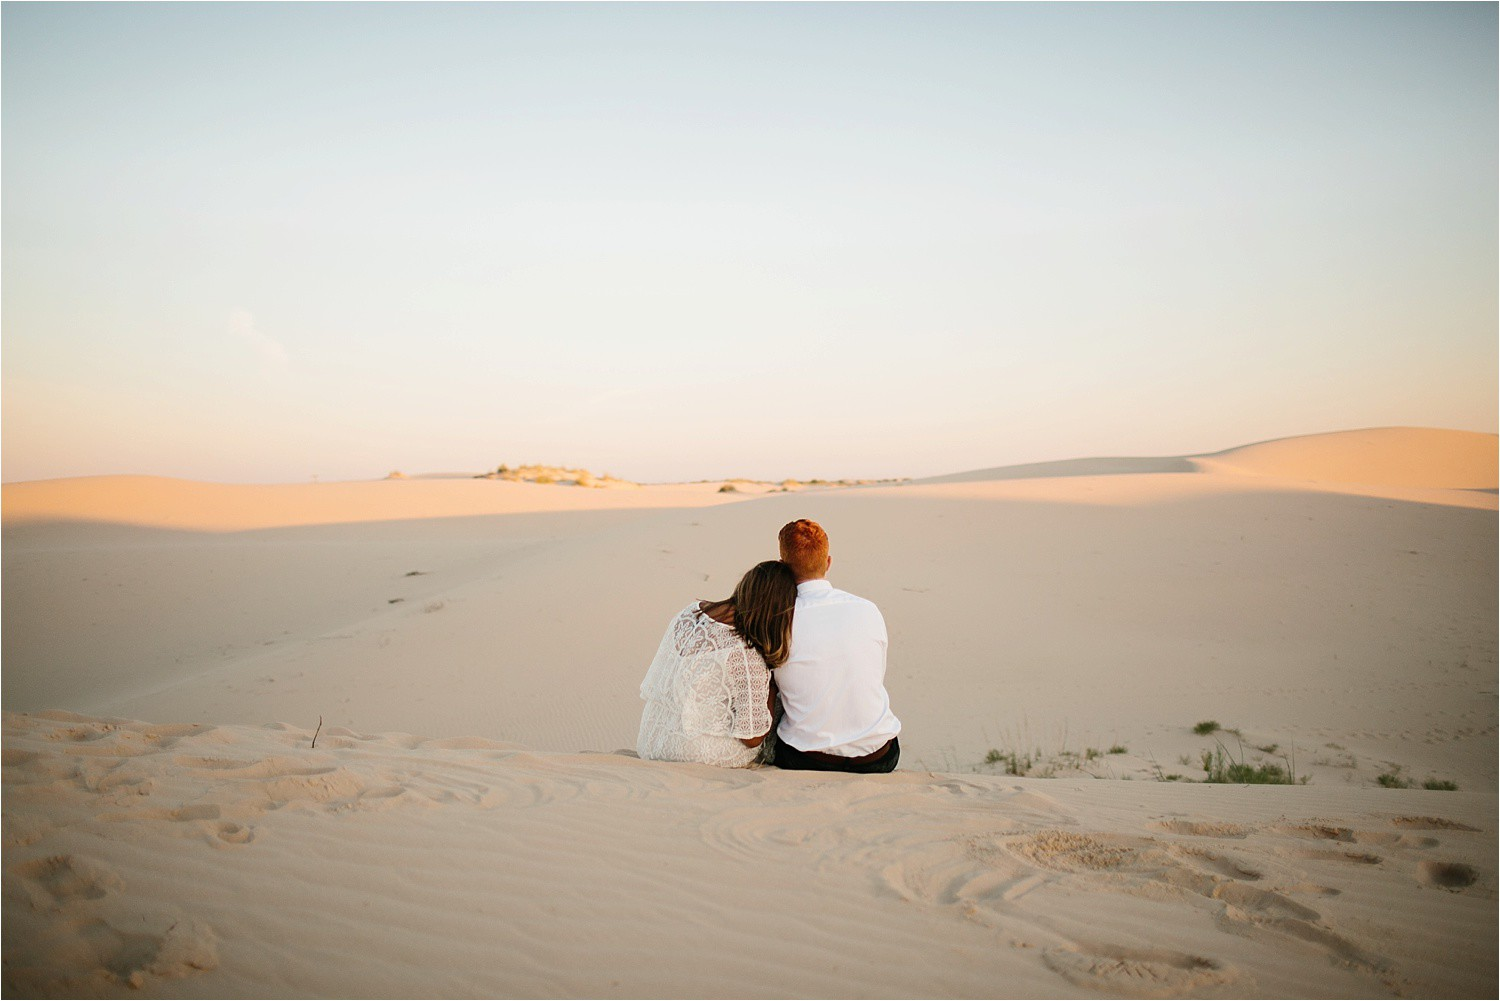 Lauren + Jacob __ a monahans sand dunes engagement session at sunrise by North Texas Wedding Photographer, Rachel Meagan Photography __ 13